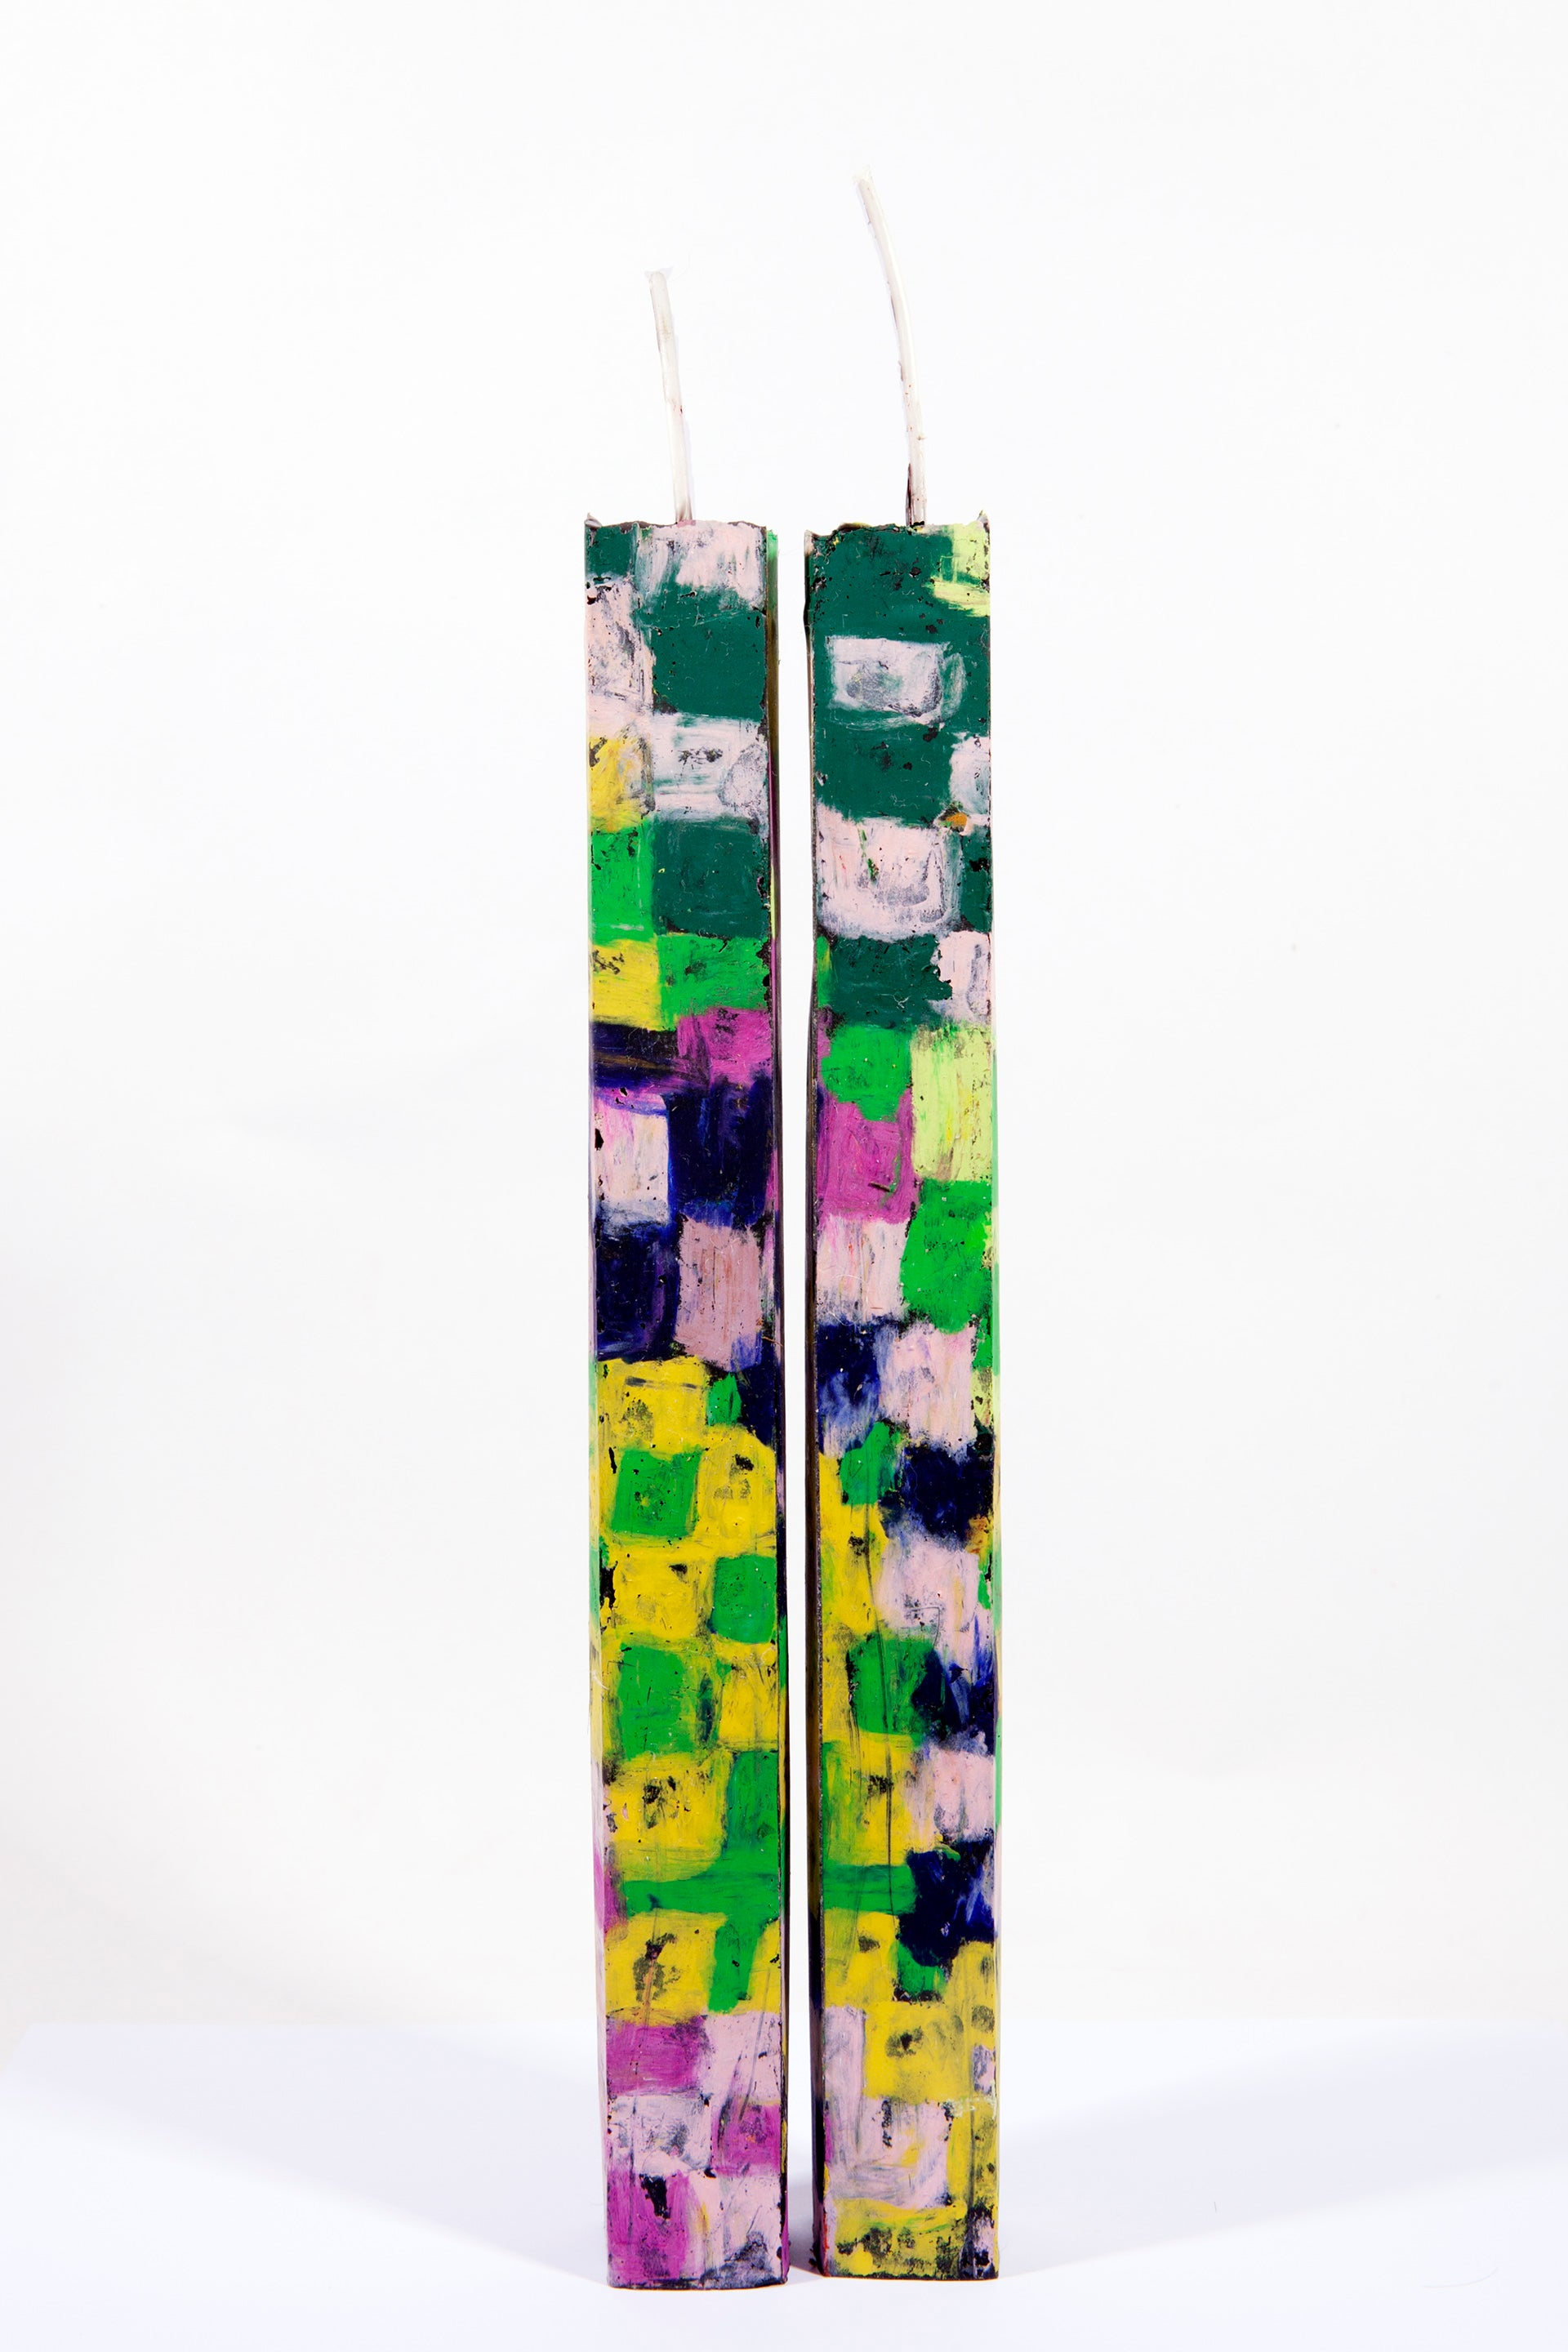 Image of Extra Tall Tower Pair in forest green, yellow, neon green, pink, magenta and navy